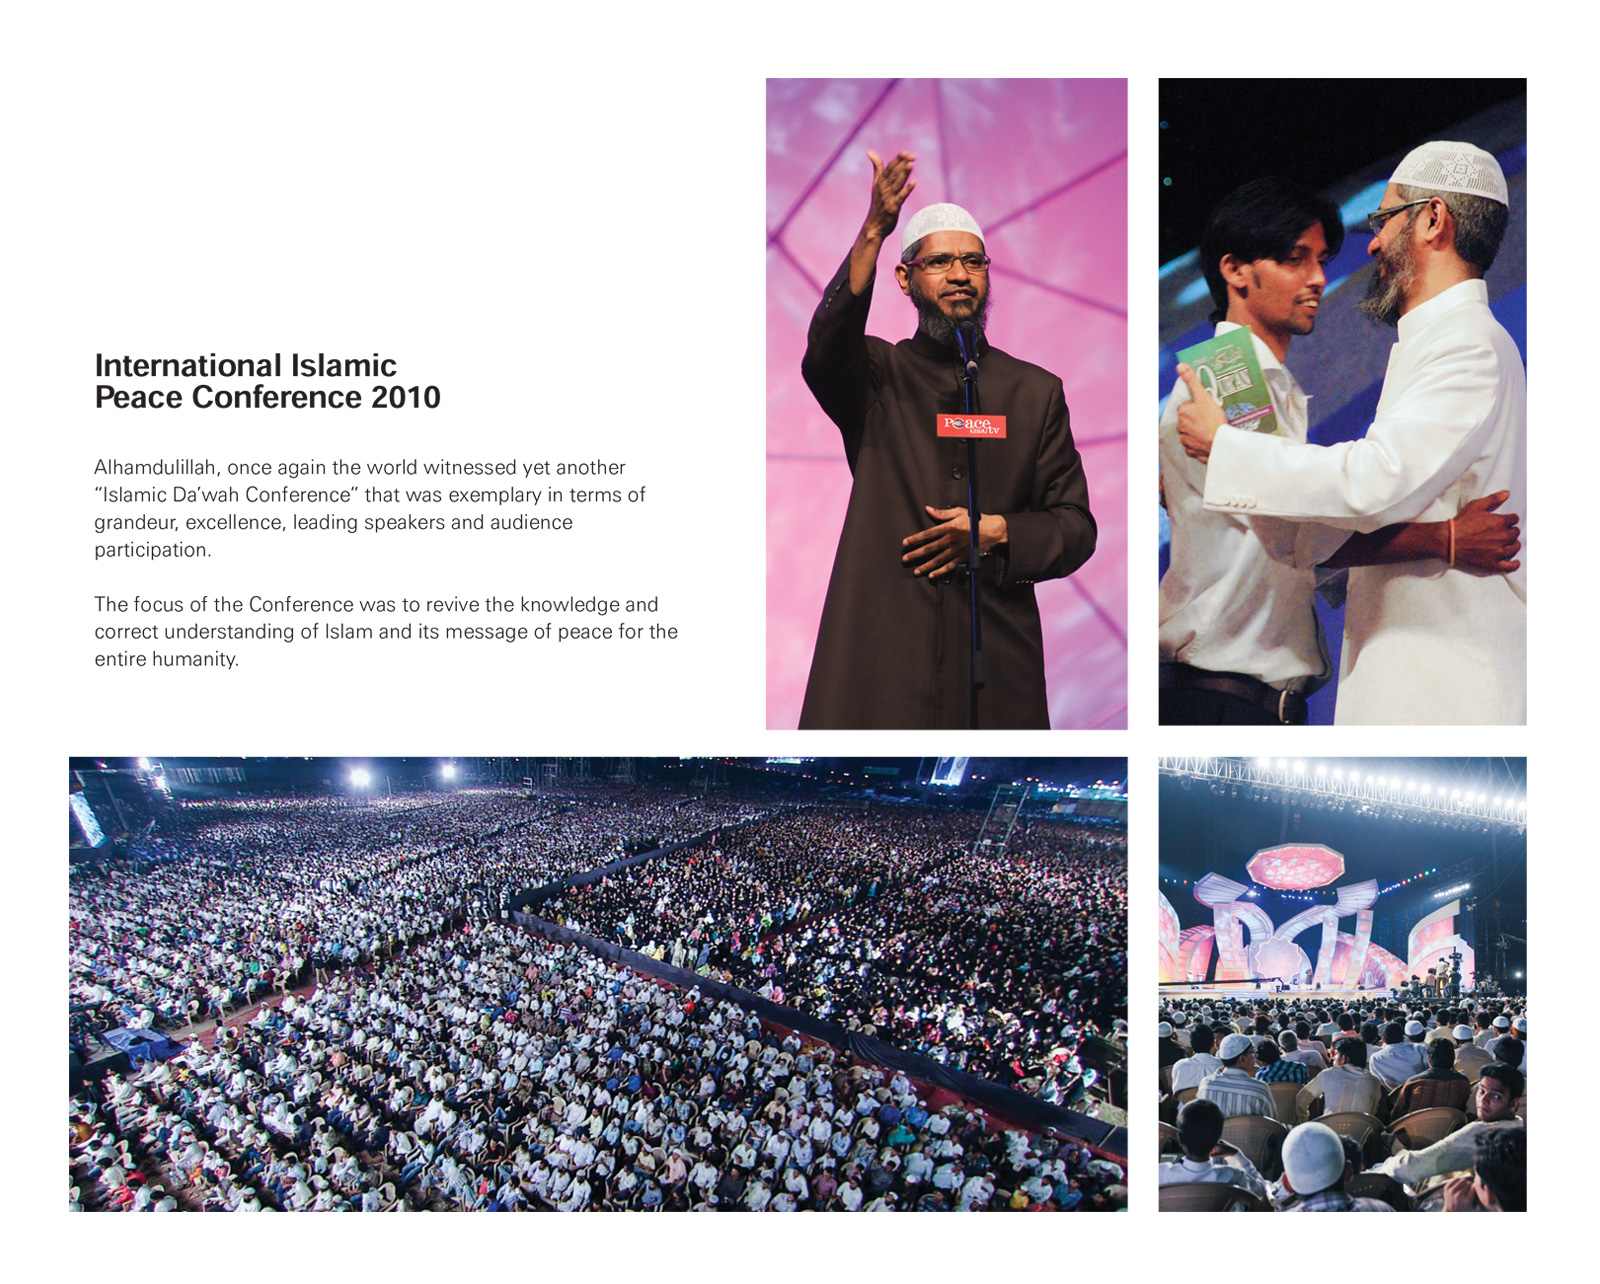 Peace Conference 2010